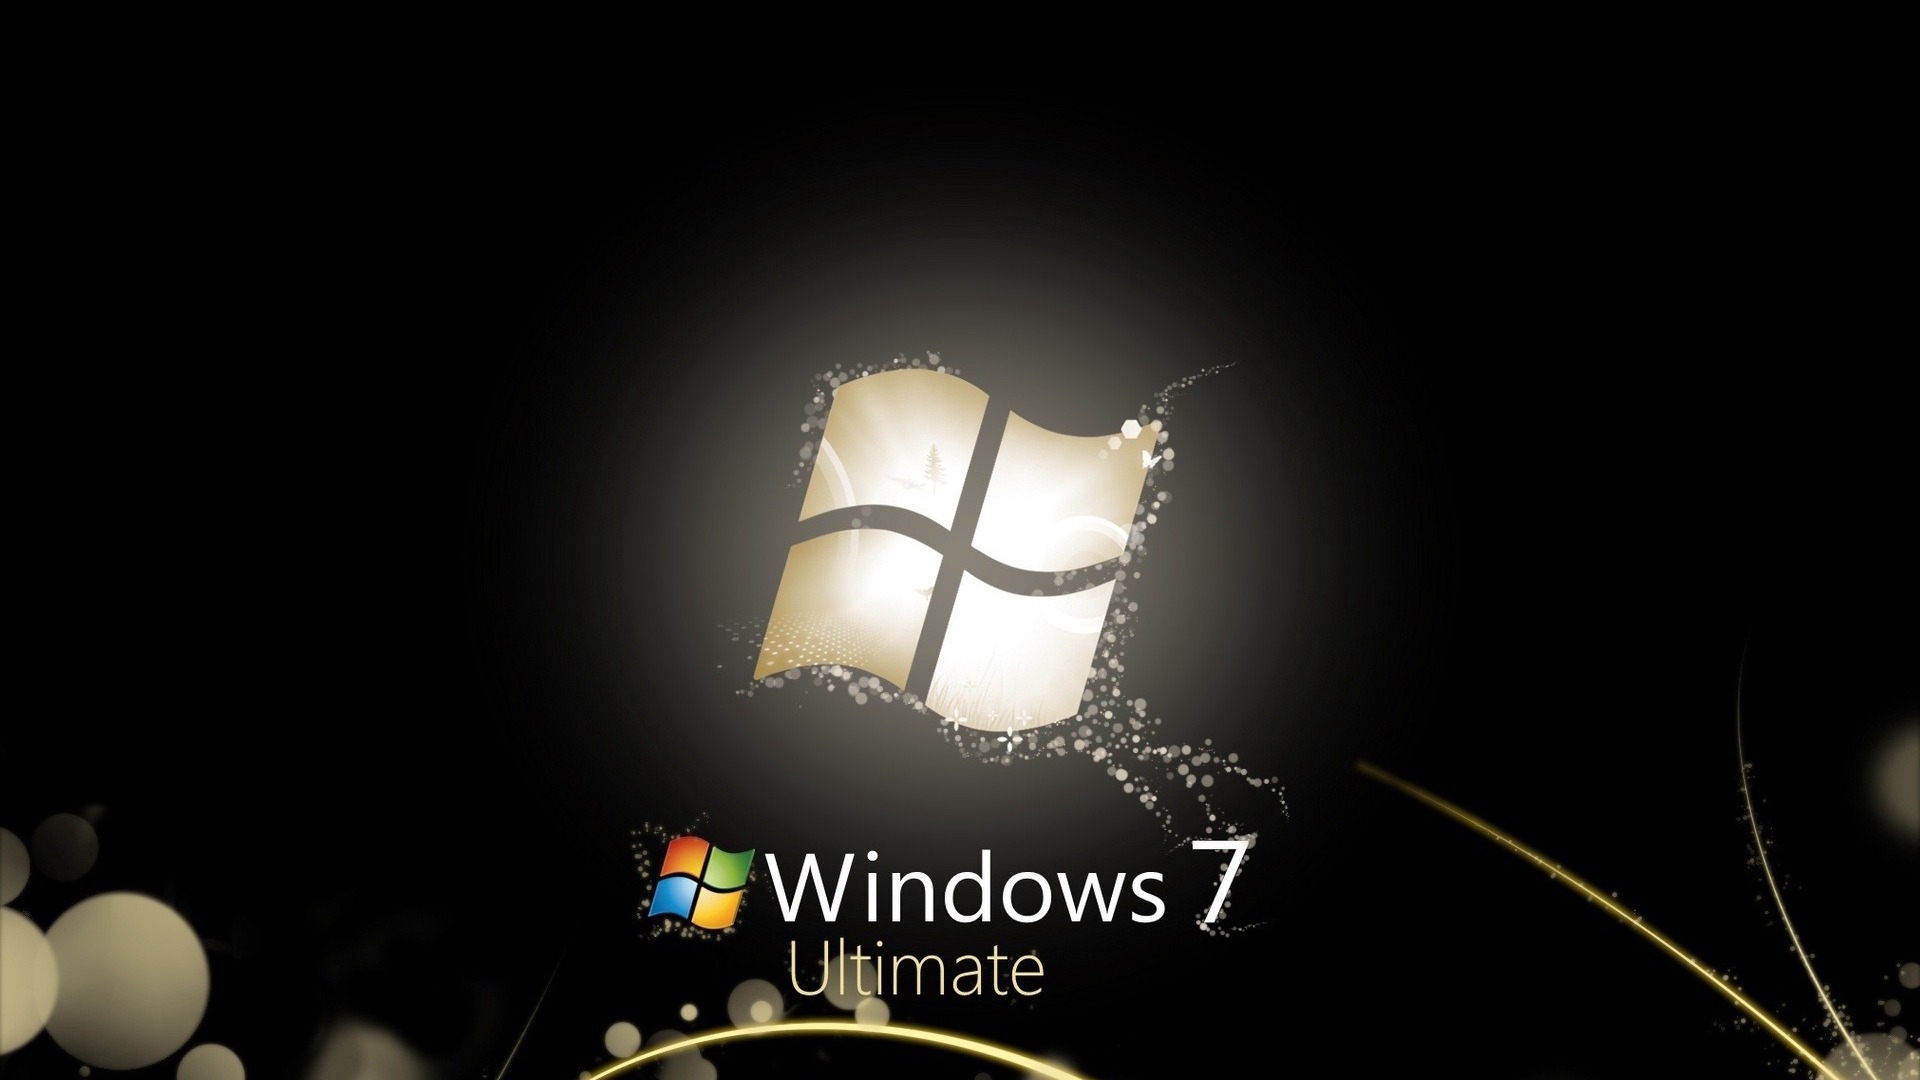 Download wallpaper 1920x1080 windows 7 ultimate bw lines full 1920x1080